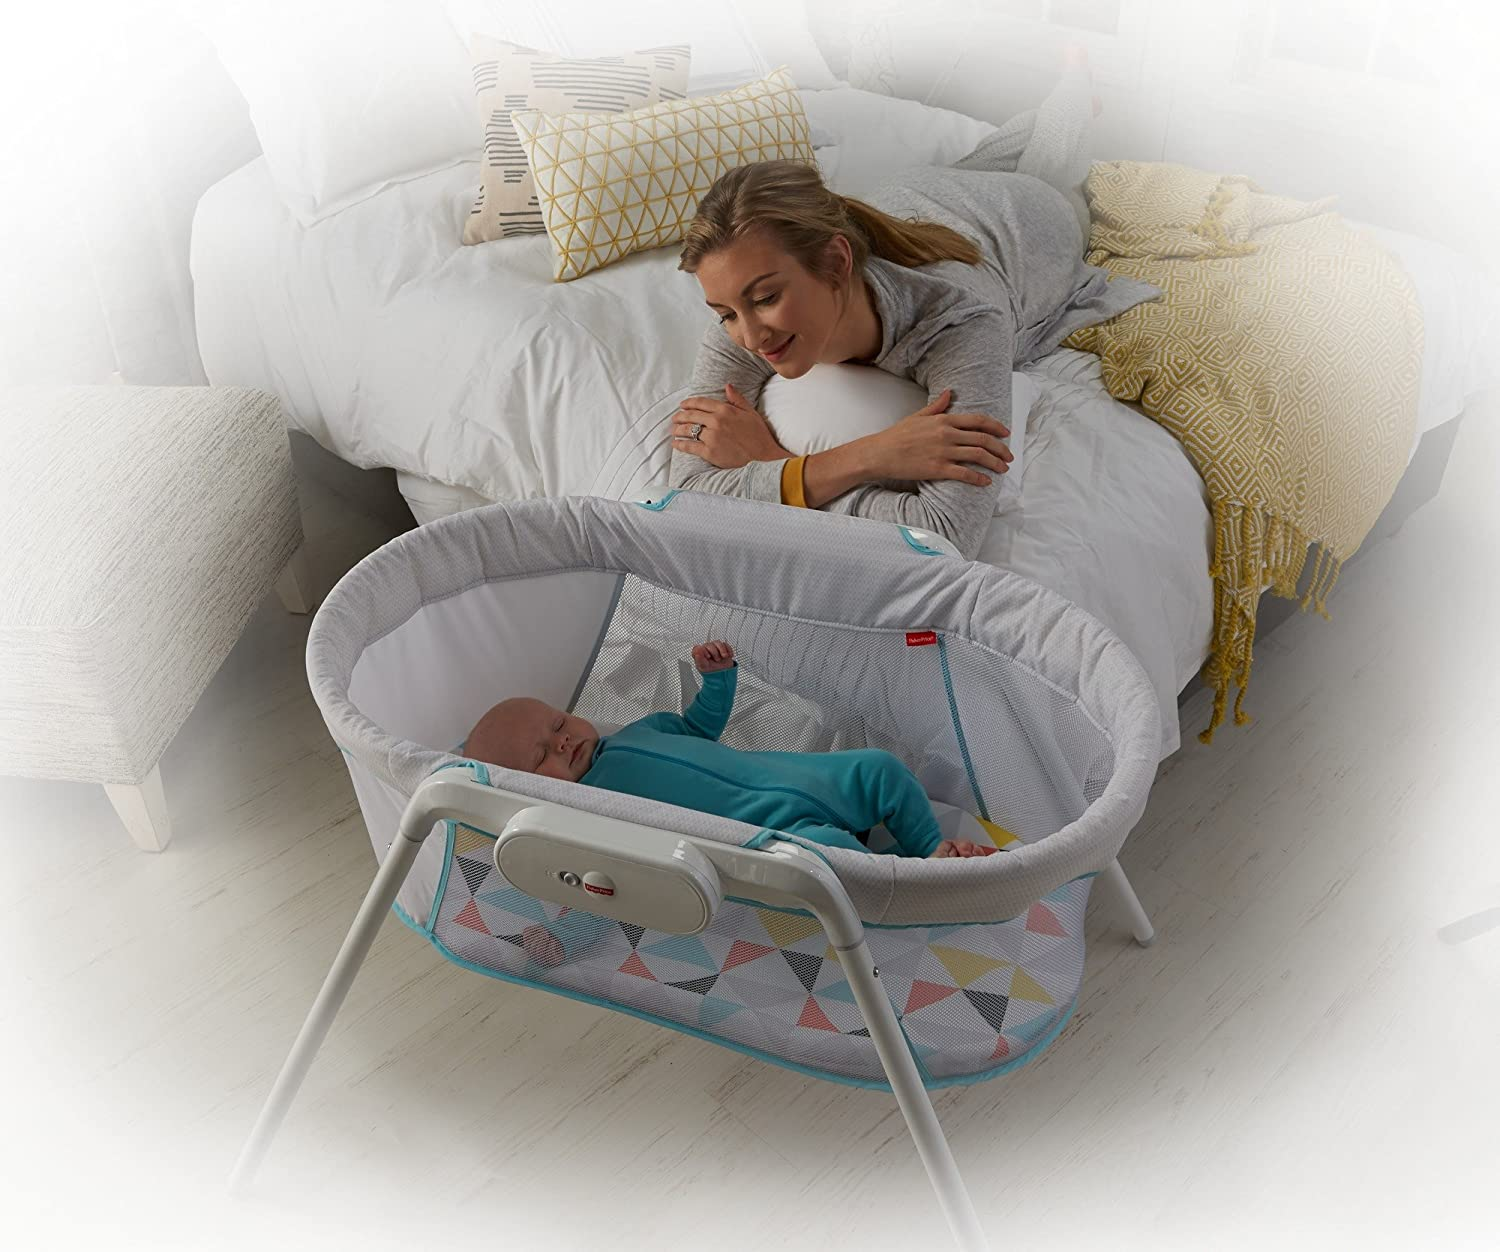 4. Fisher-Price Stow 'N Go Bassinet